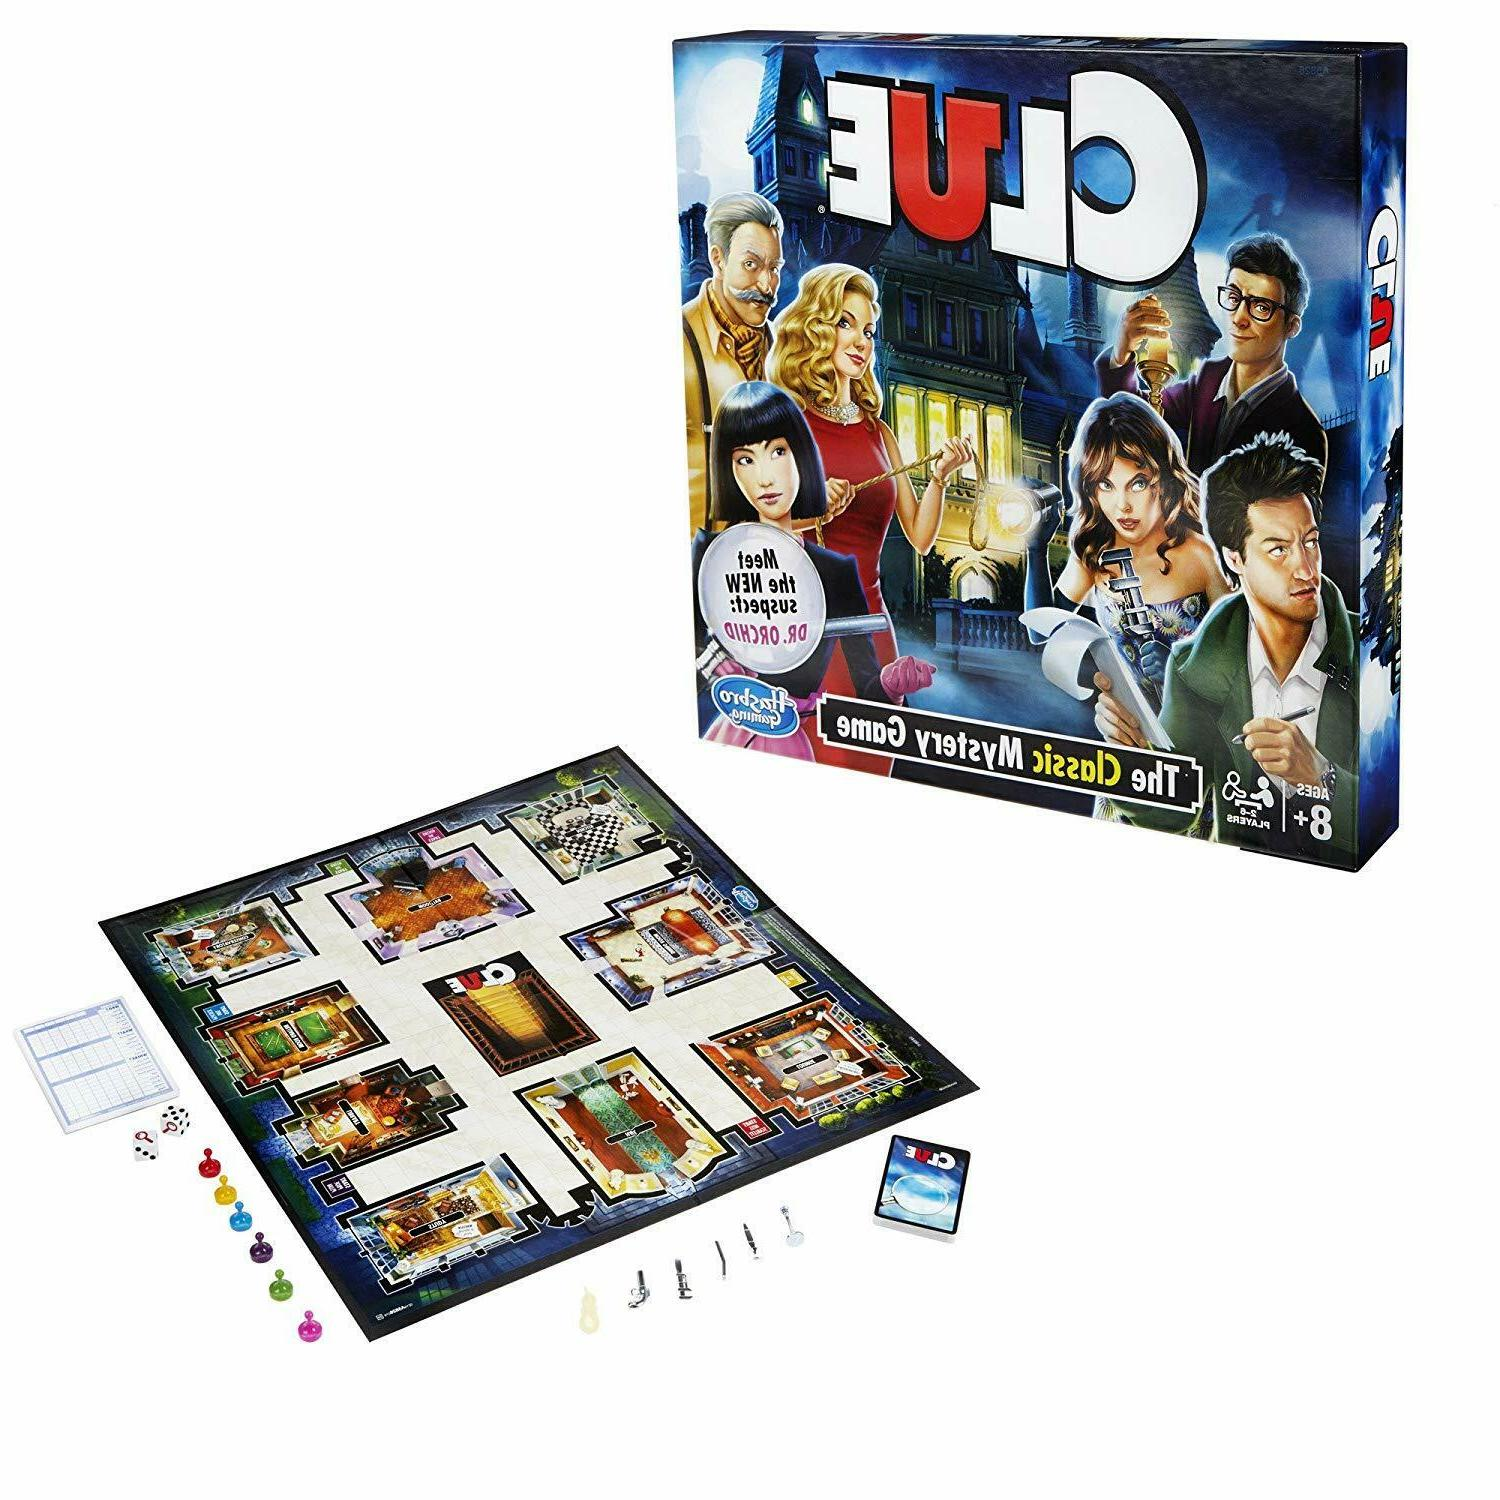 Clue Board New - Free